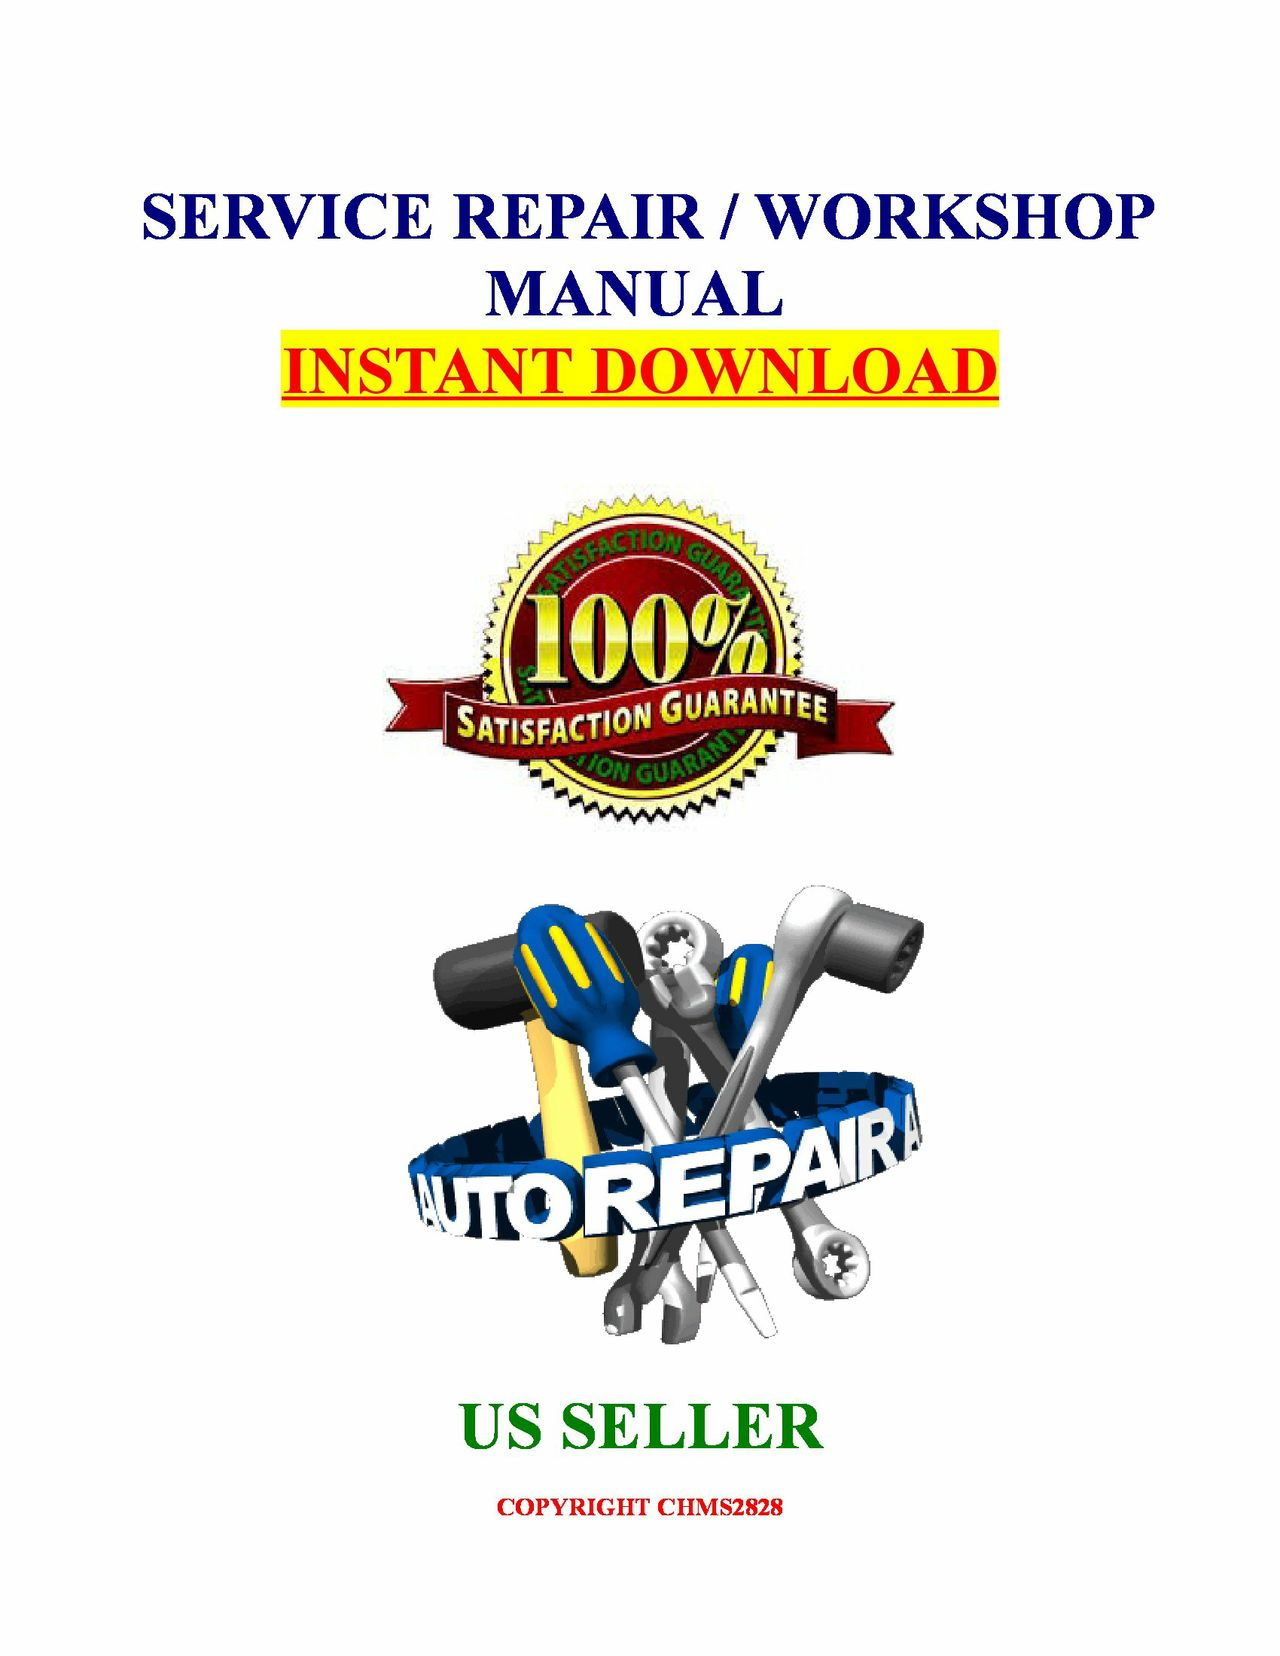 Suzuki GSX1300R GSX-1300R Hayabusa 1999 - 2003 Motorcycle Service Repair Manual